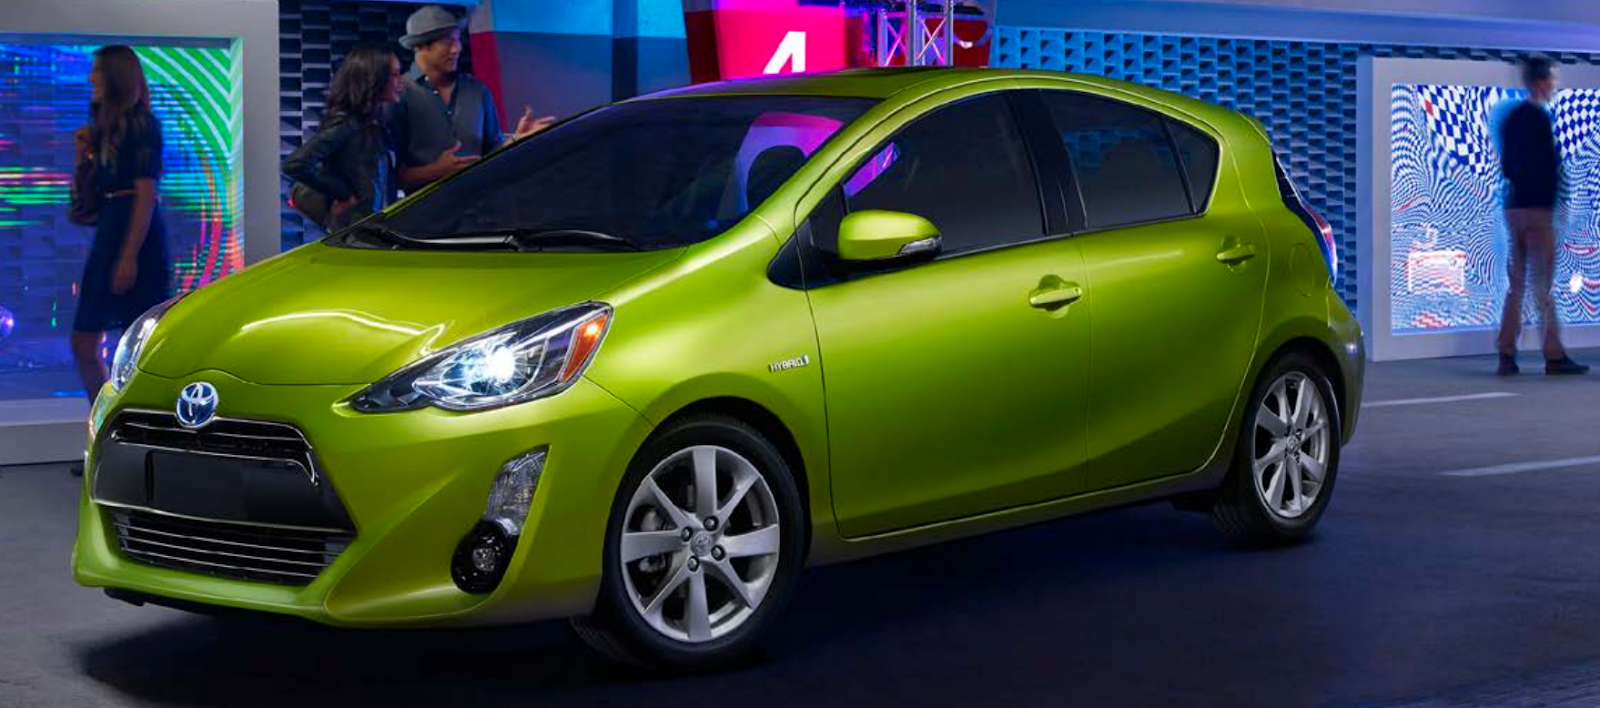 Toyota Burnaby - Toyota Prius C lime green - Vancouver Toyota Dealer